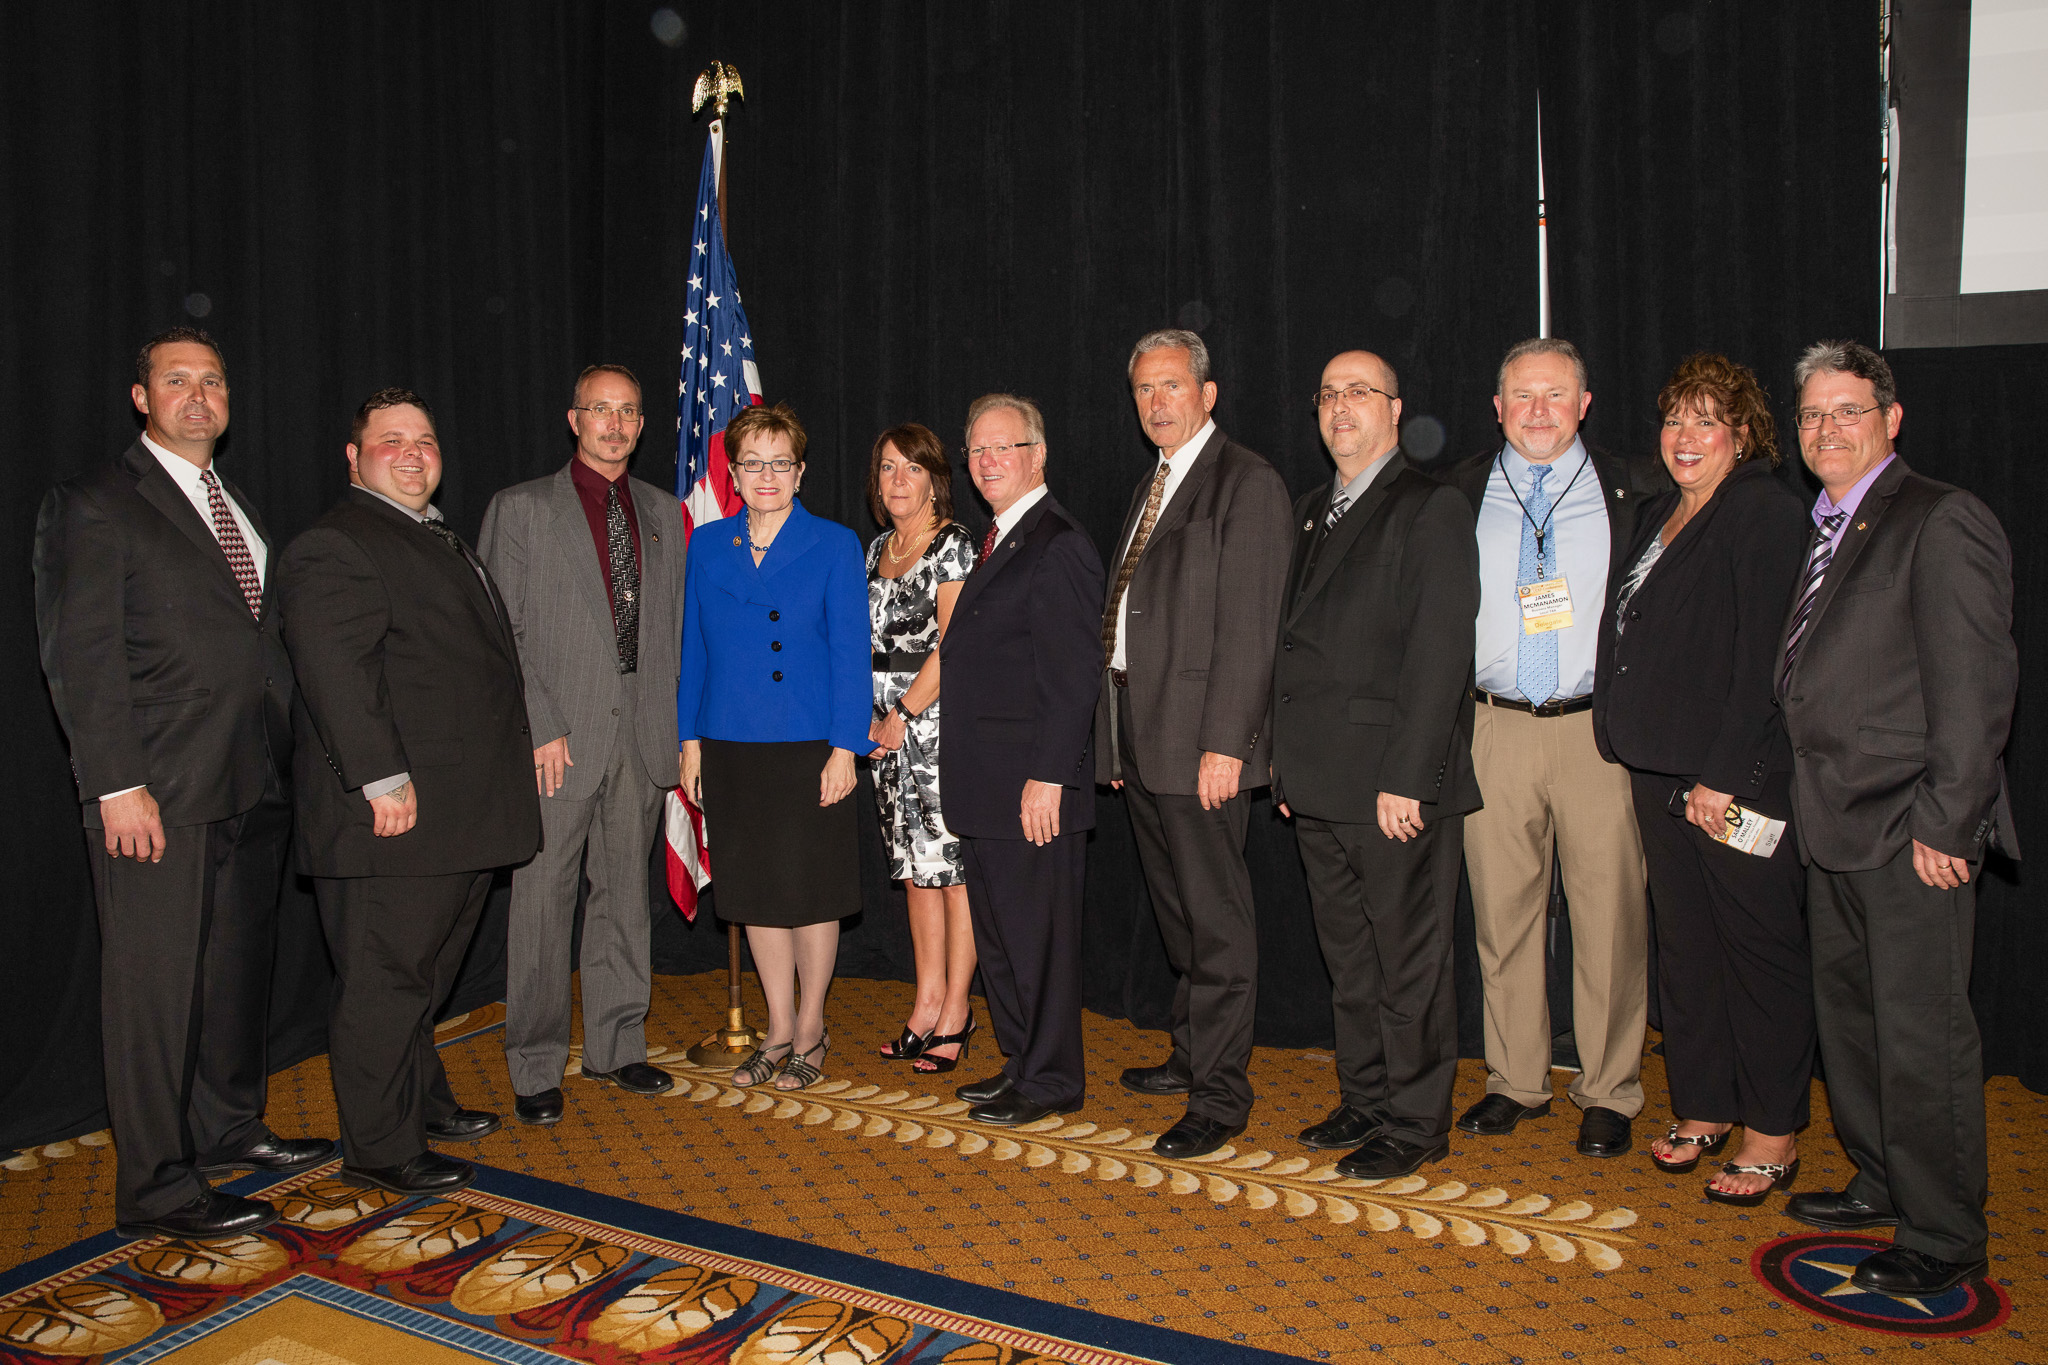 IBB reception draws members of Congress, aides | International Brotherhood of Boilermakers